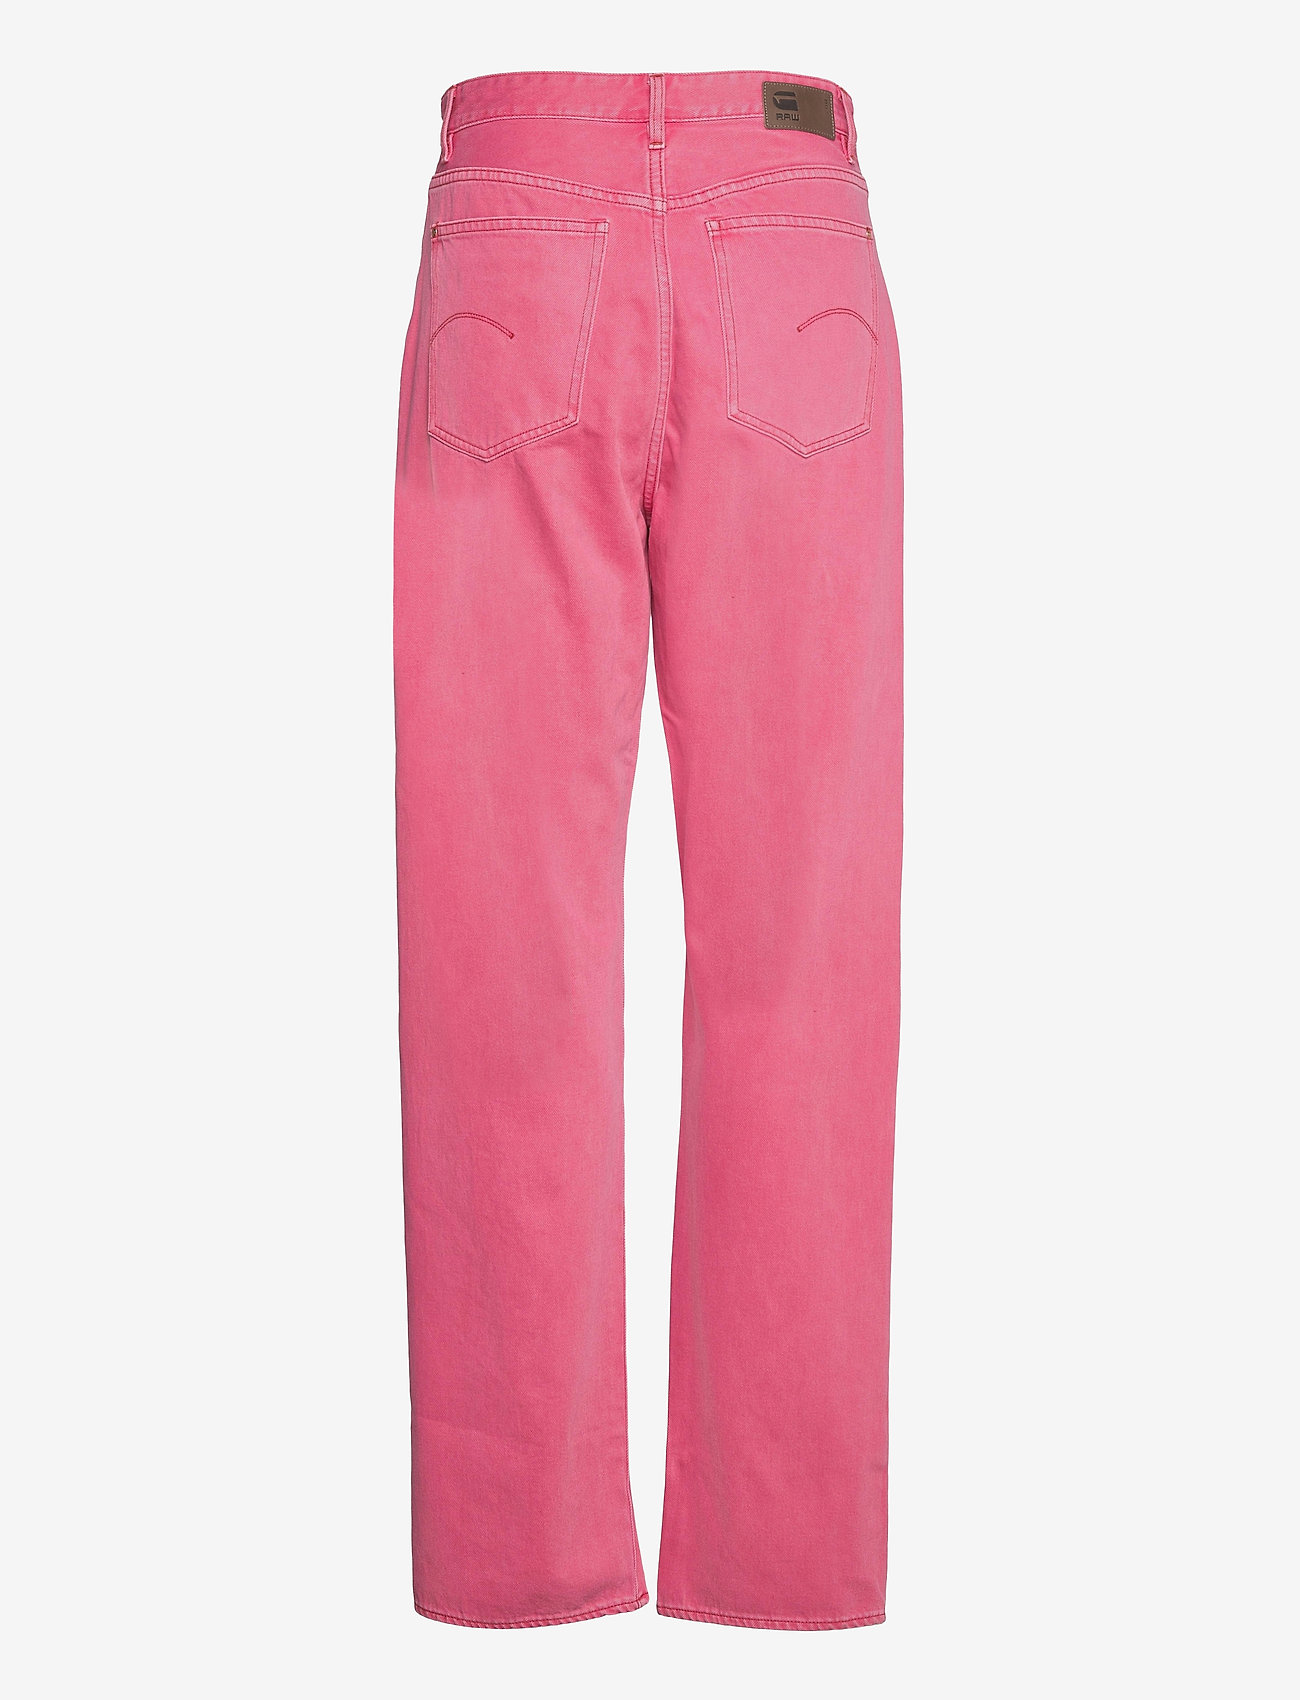 G-star RAW - Tedie Ultra High Long Straight Wmn - straight regular - recycrom petunia pink gd - 1